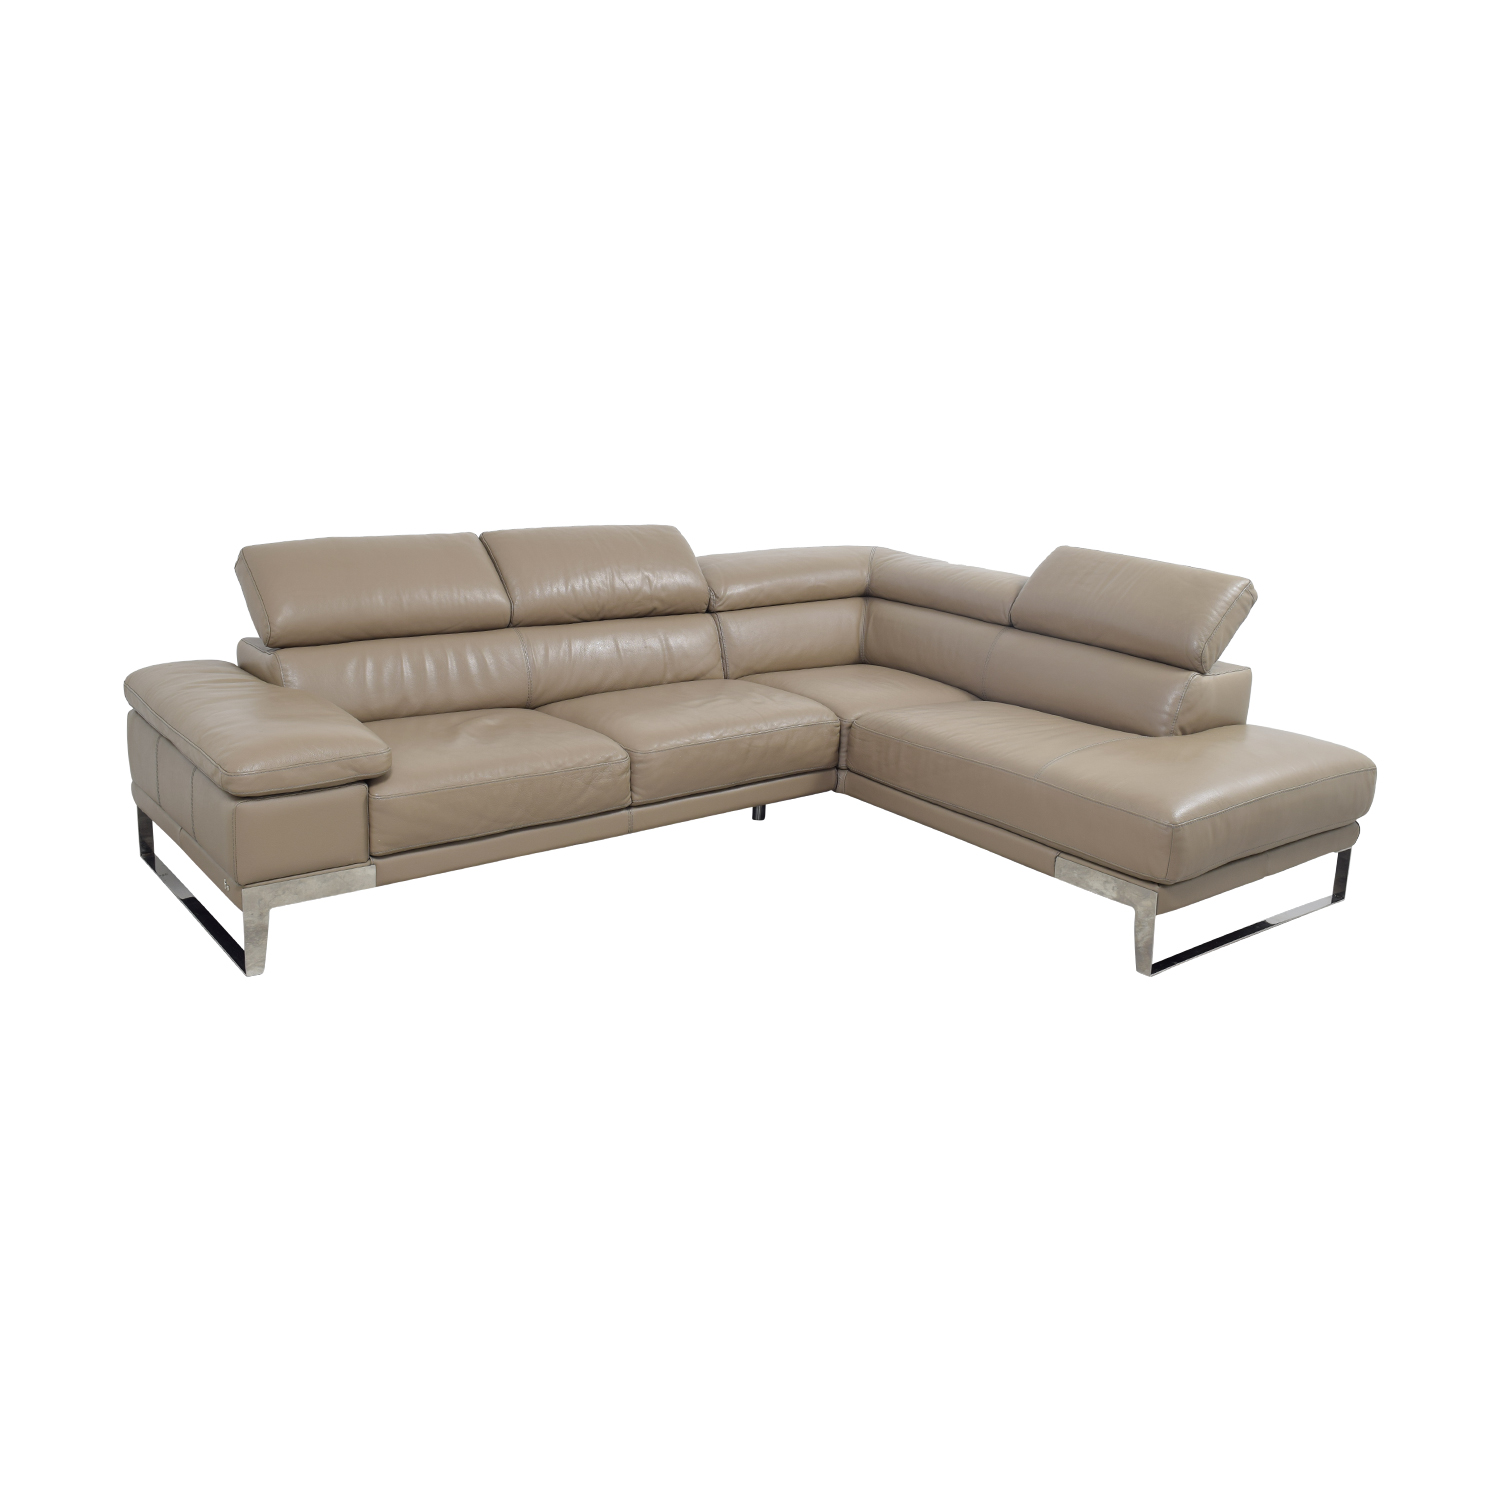 jensen lewis sleeper sofa price mattress for beds 66 off and tan leather l